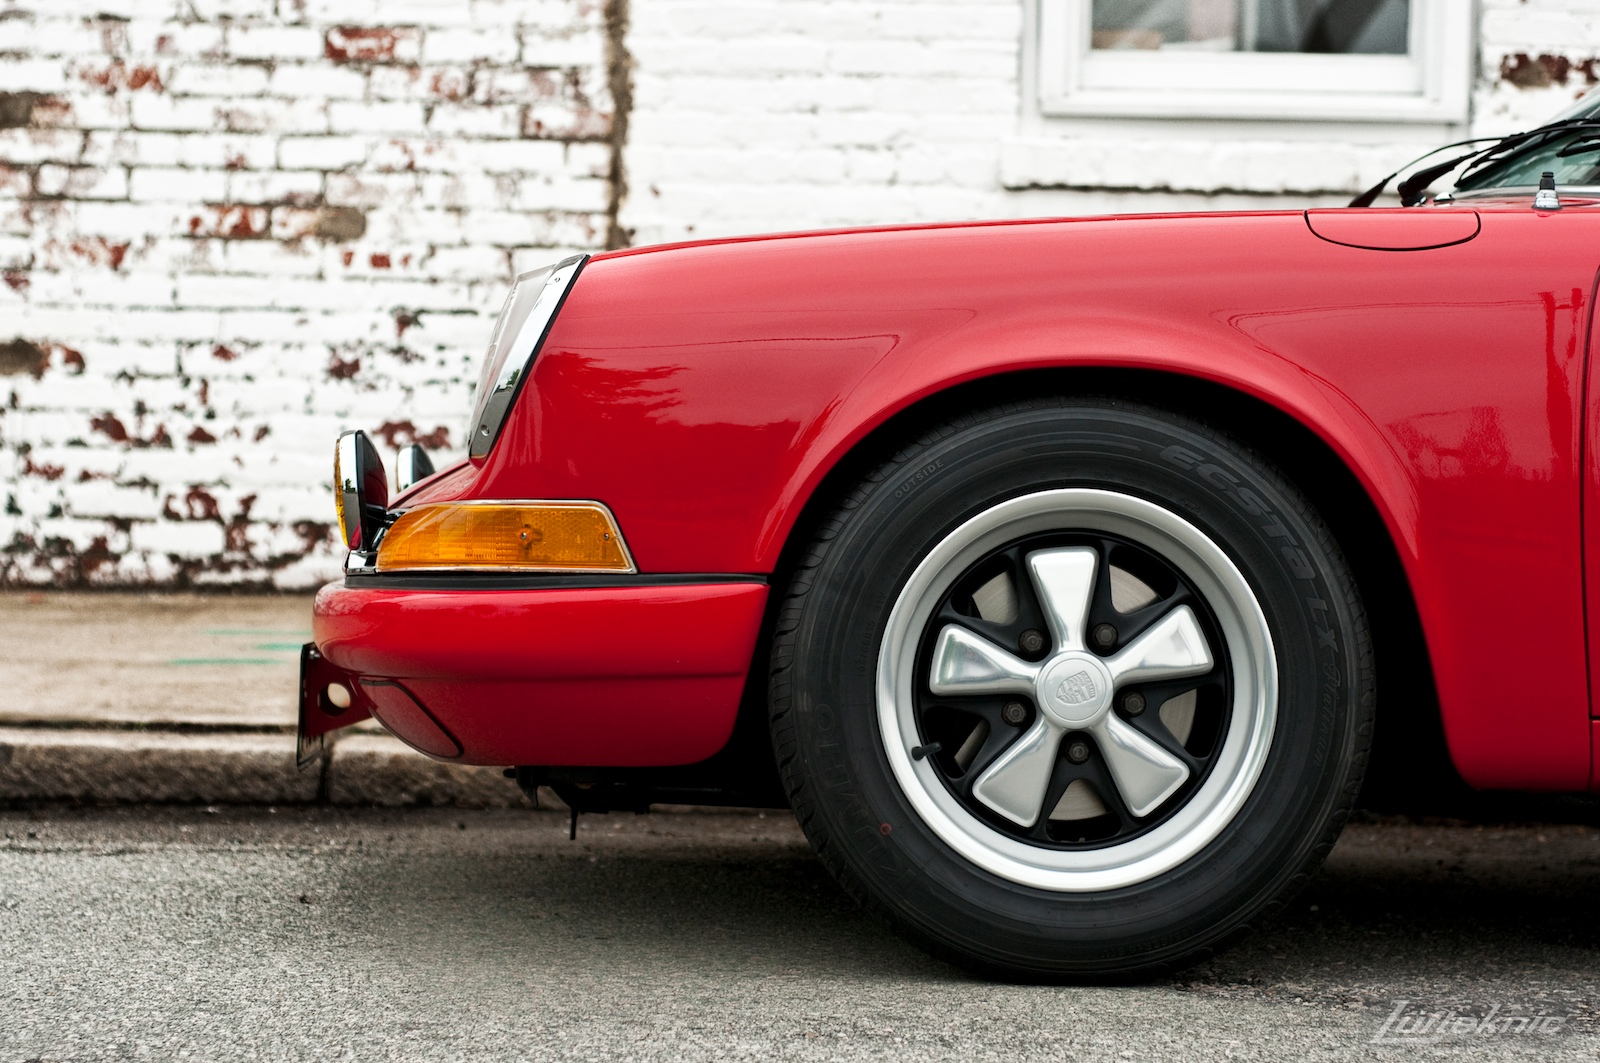 The front wheel and fender on a red 911E in profile.